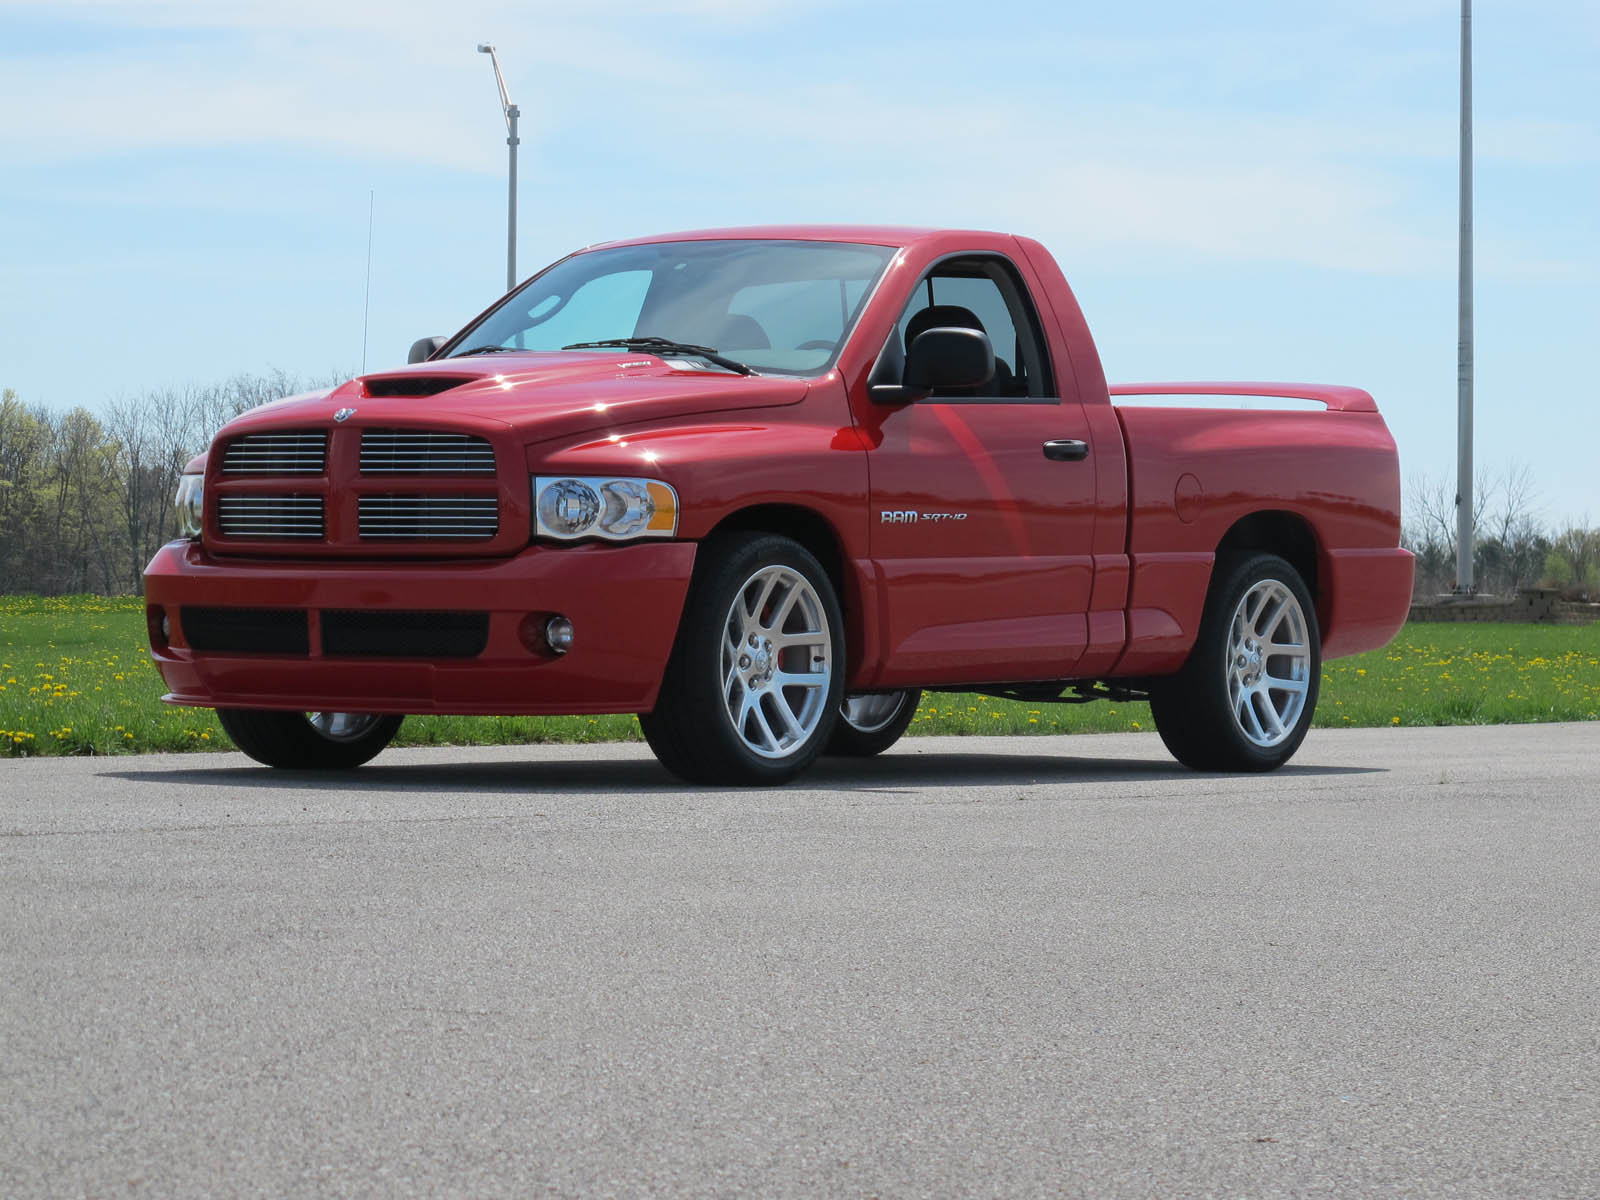 Ram SRT-10 for sale (1)